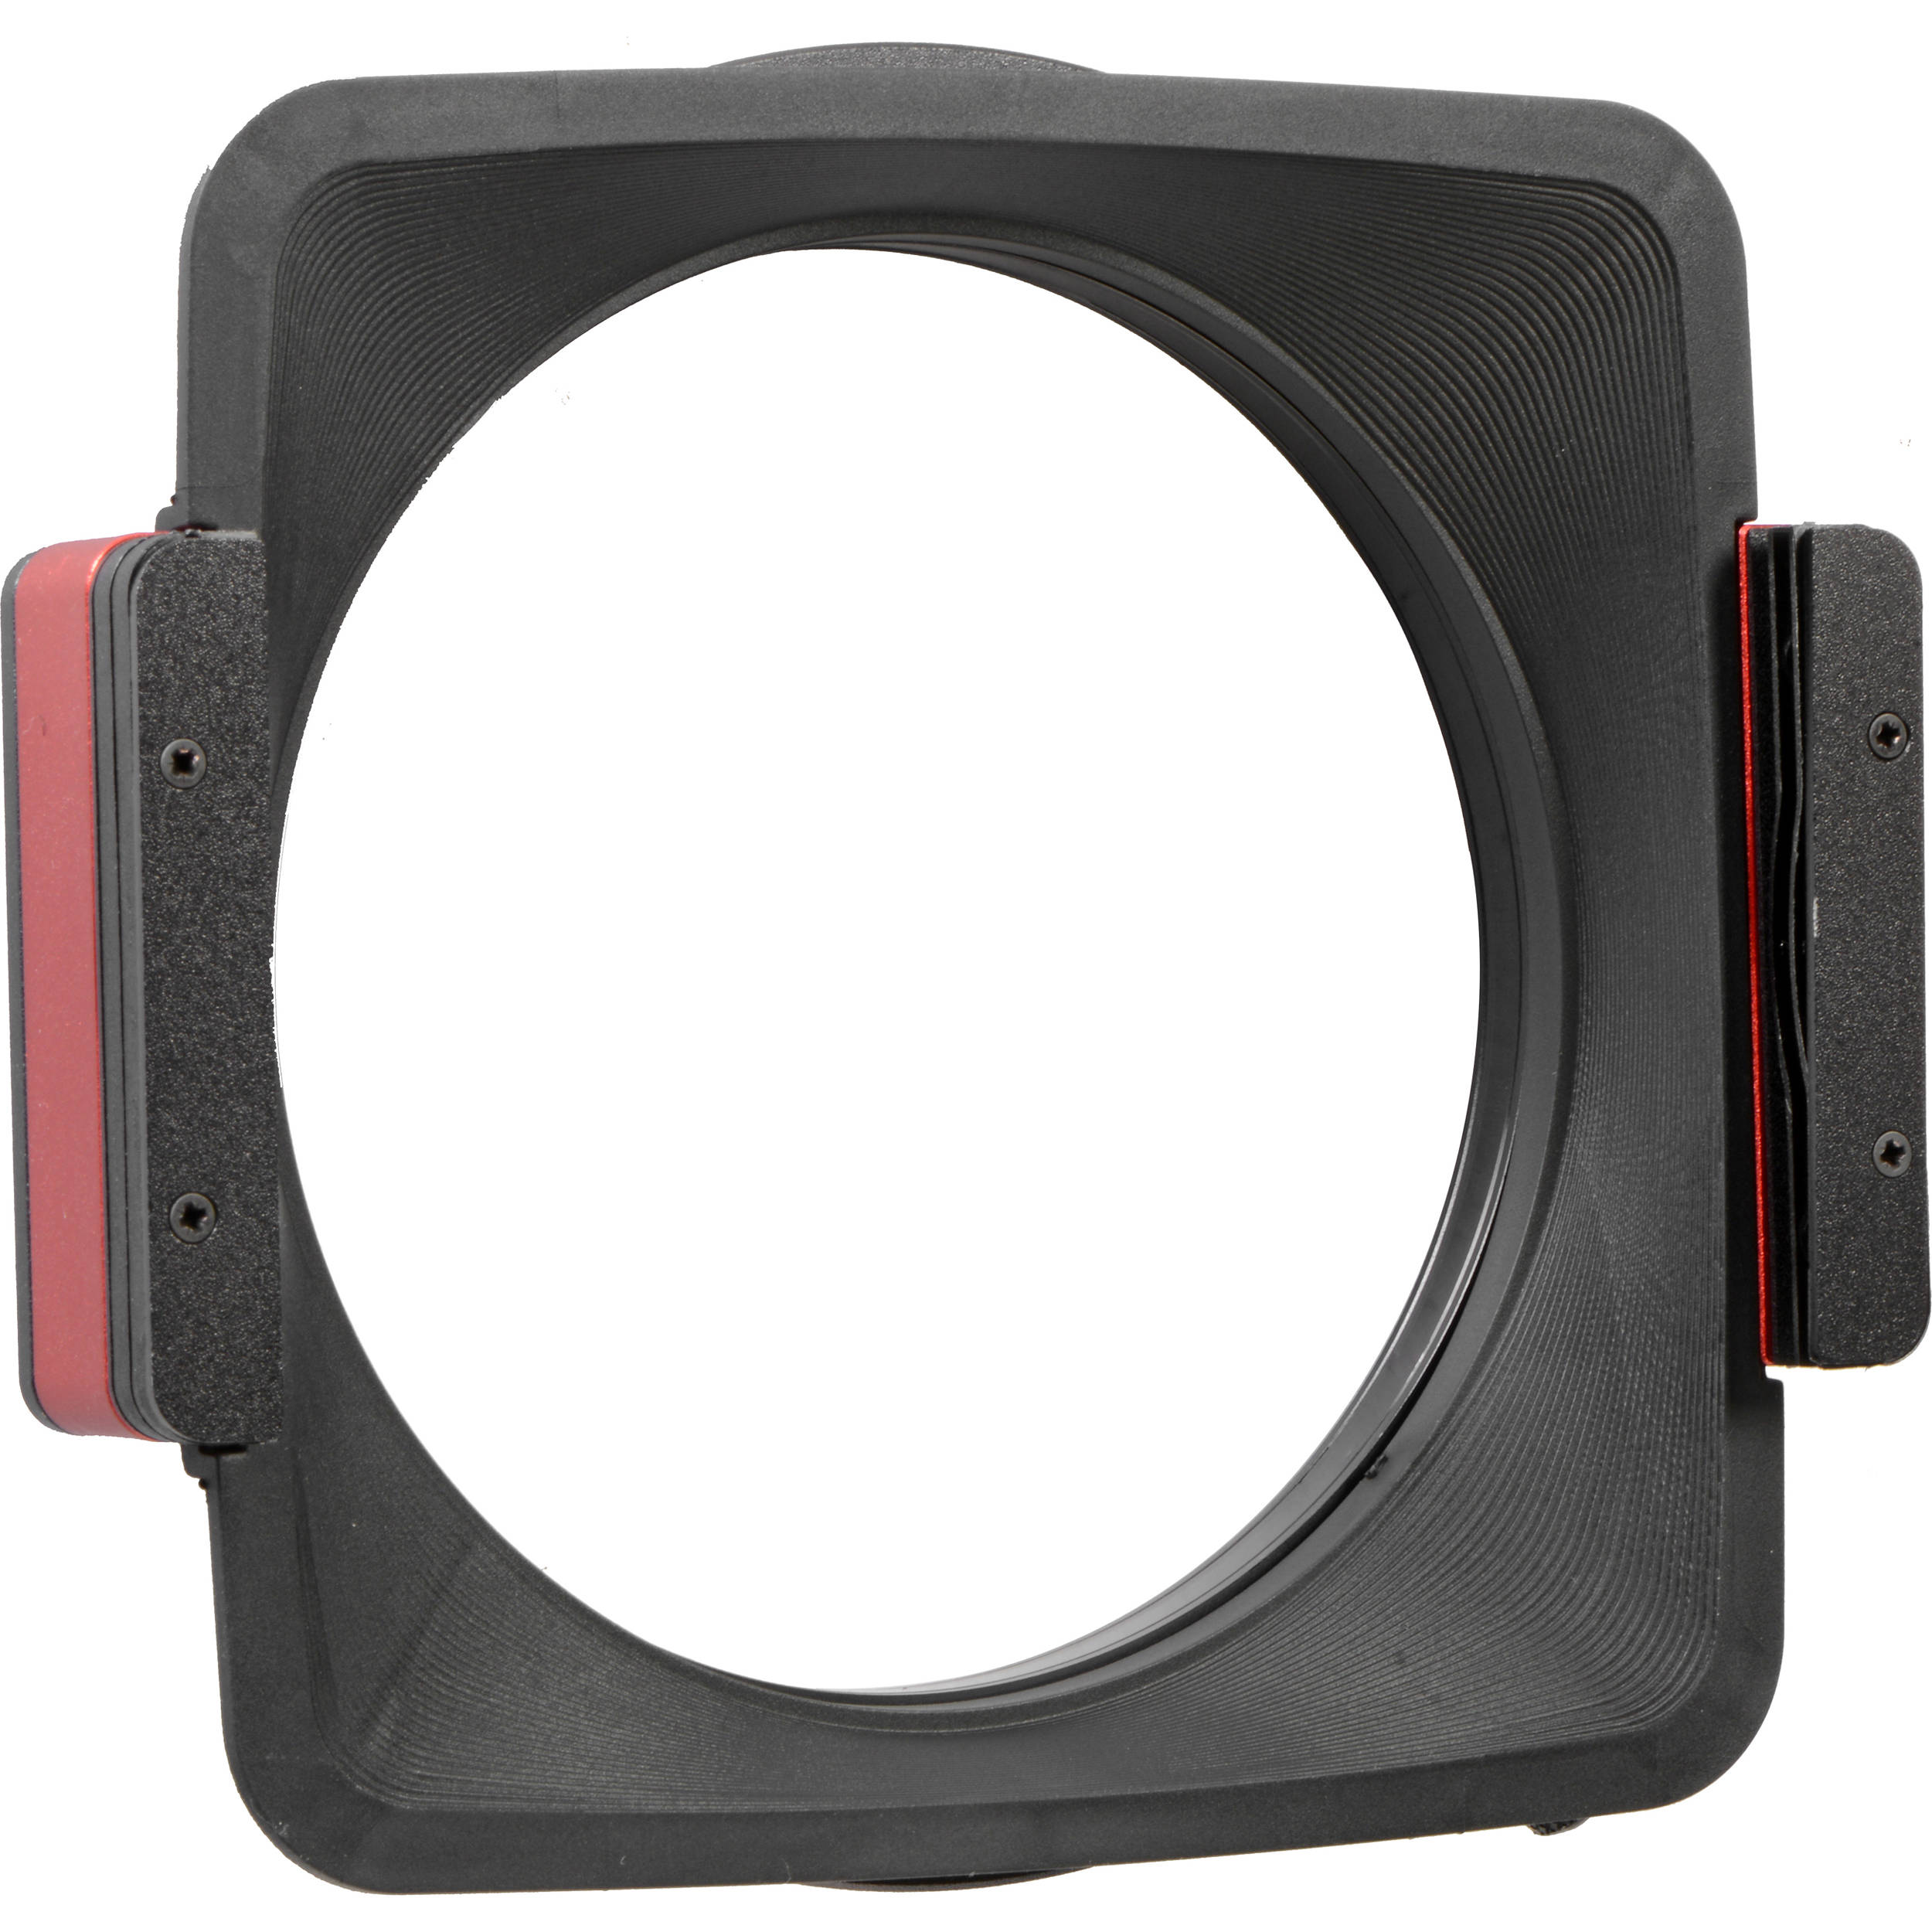 Le Meilleur Lee Filters Sw150 Mark Ii Filter System Holder Sw150Fh B H Ce Mois Ci